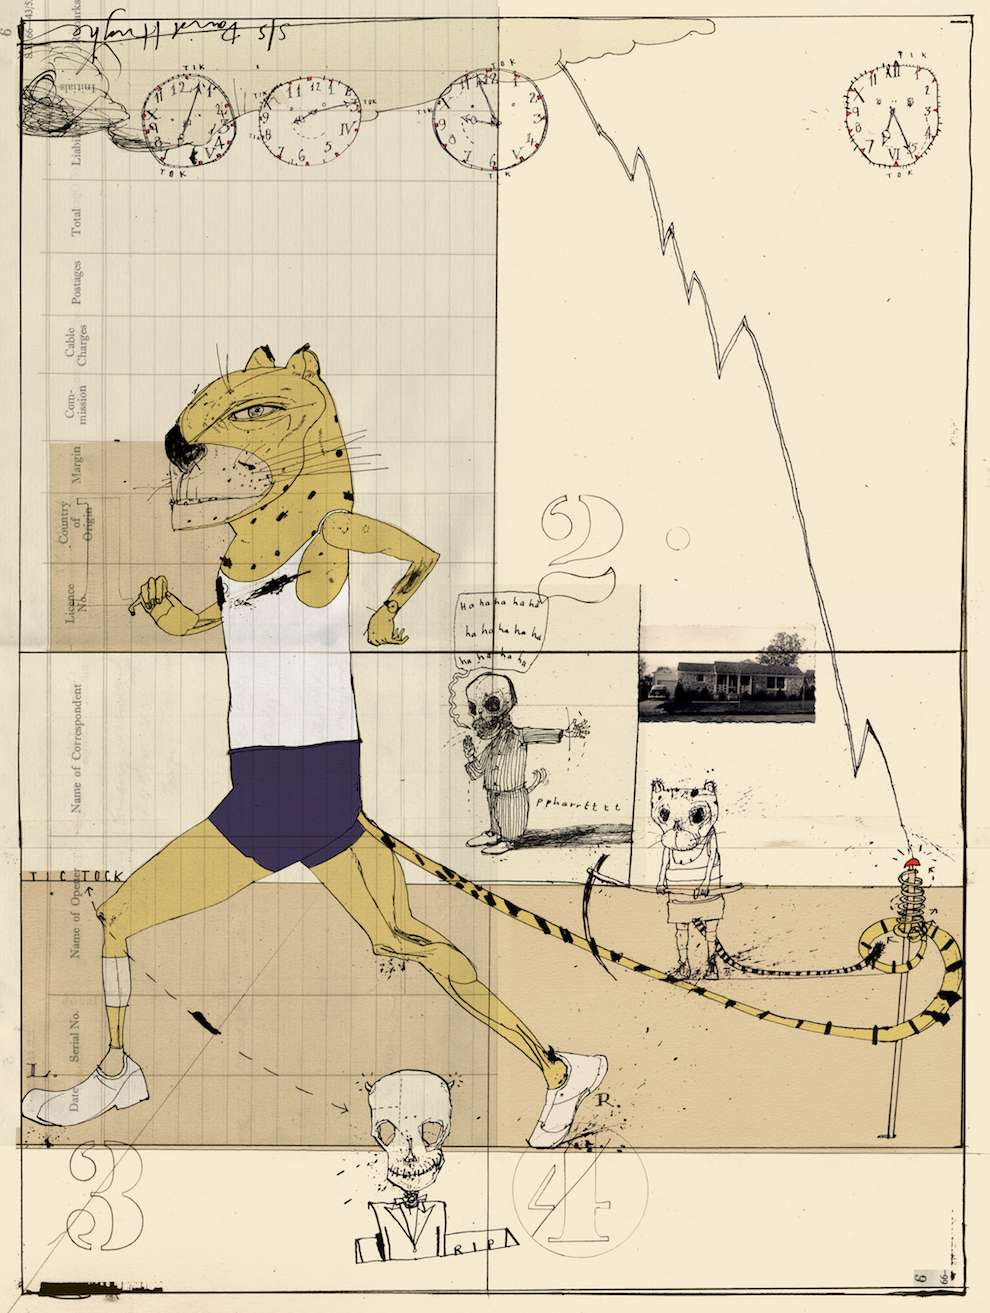 David Hughes, mixed media illustration using pen and collage. Personify leopard running like a human